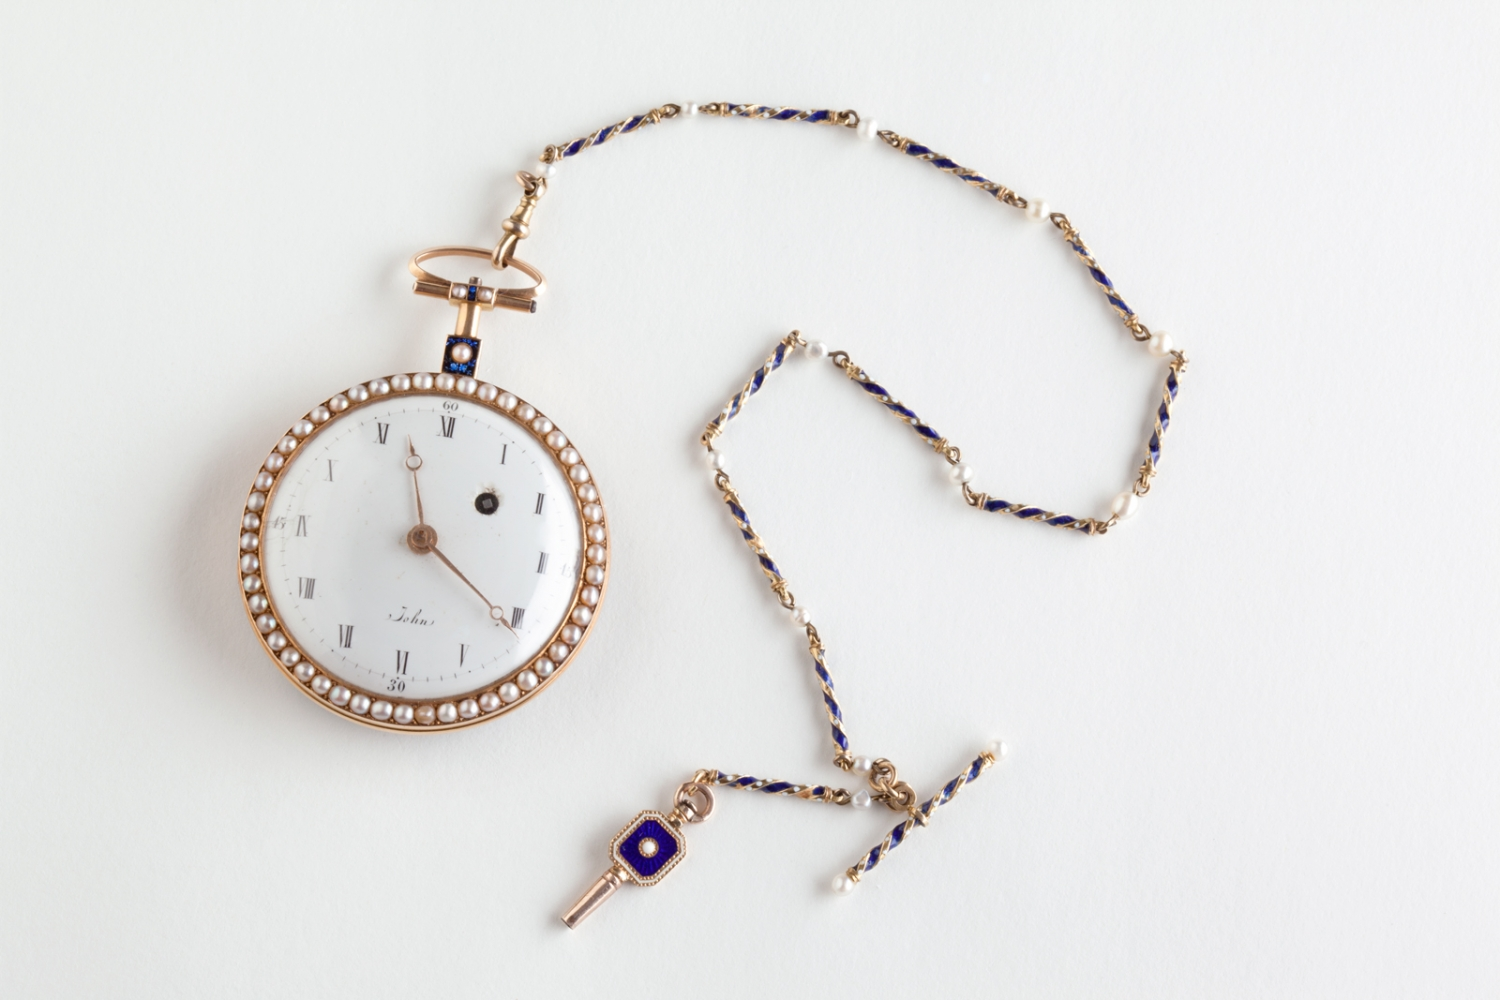 Face of pocket watch with white enamel dial, circa 1816